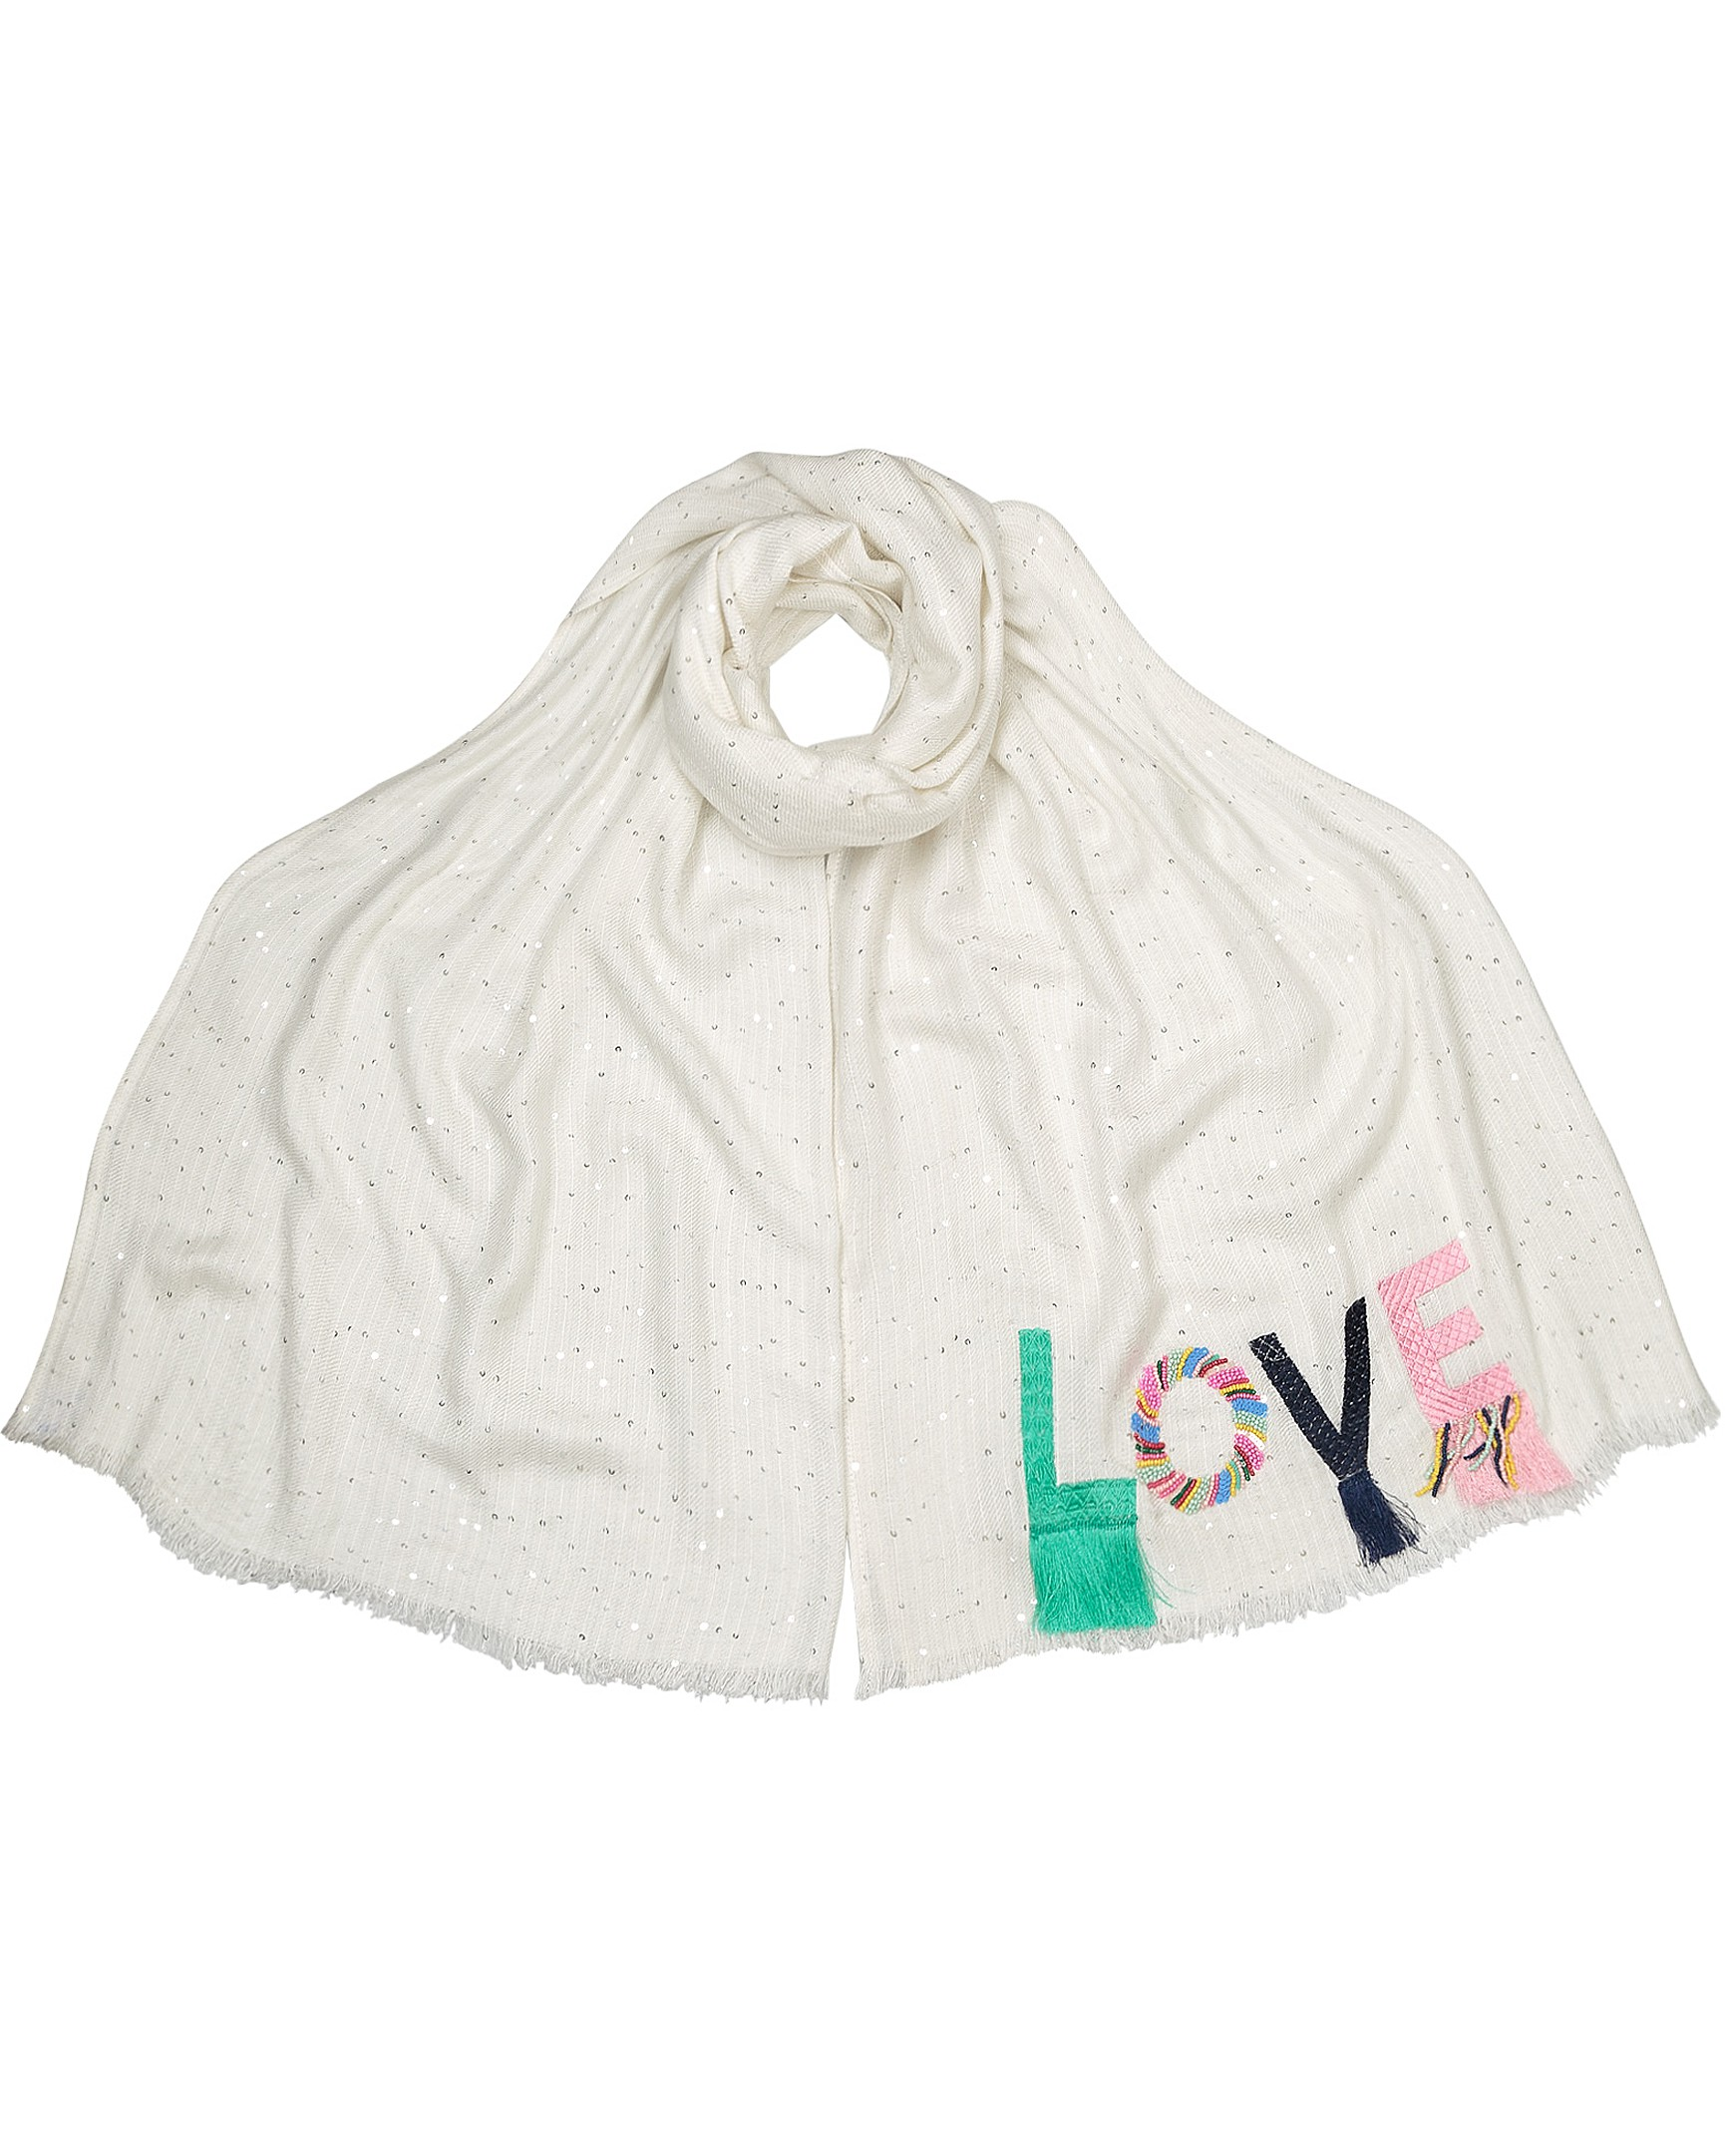 6f09ac24504 Love Letters Applique White Scarf